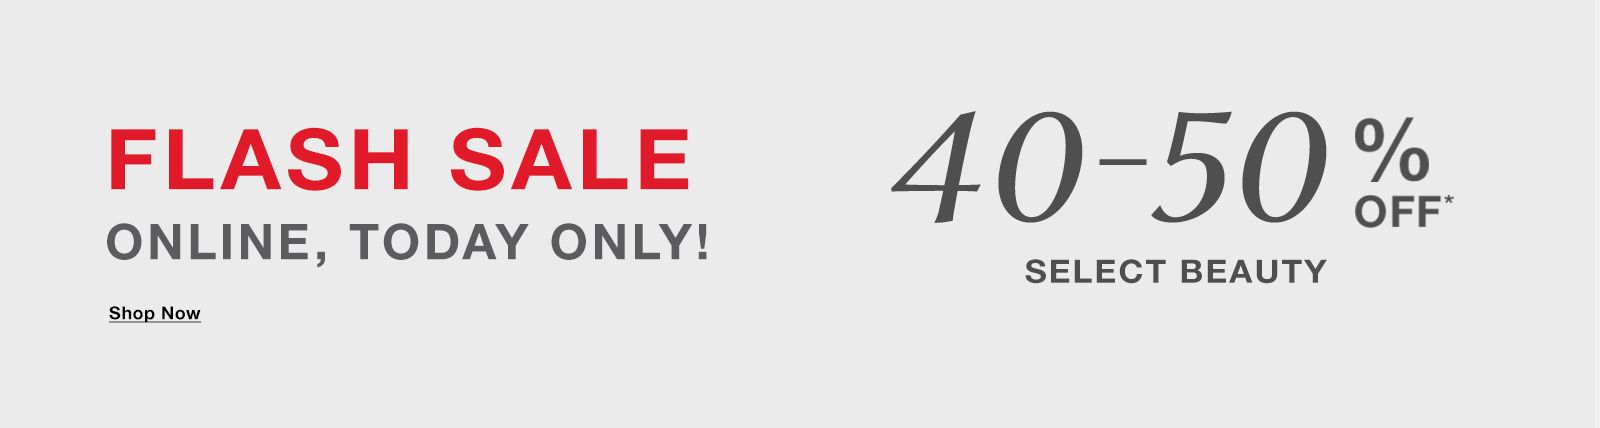 Flash Sale Online, Today Only! 40-50 percent Off, Select